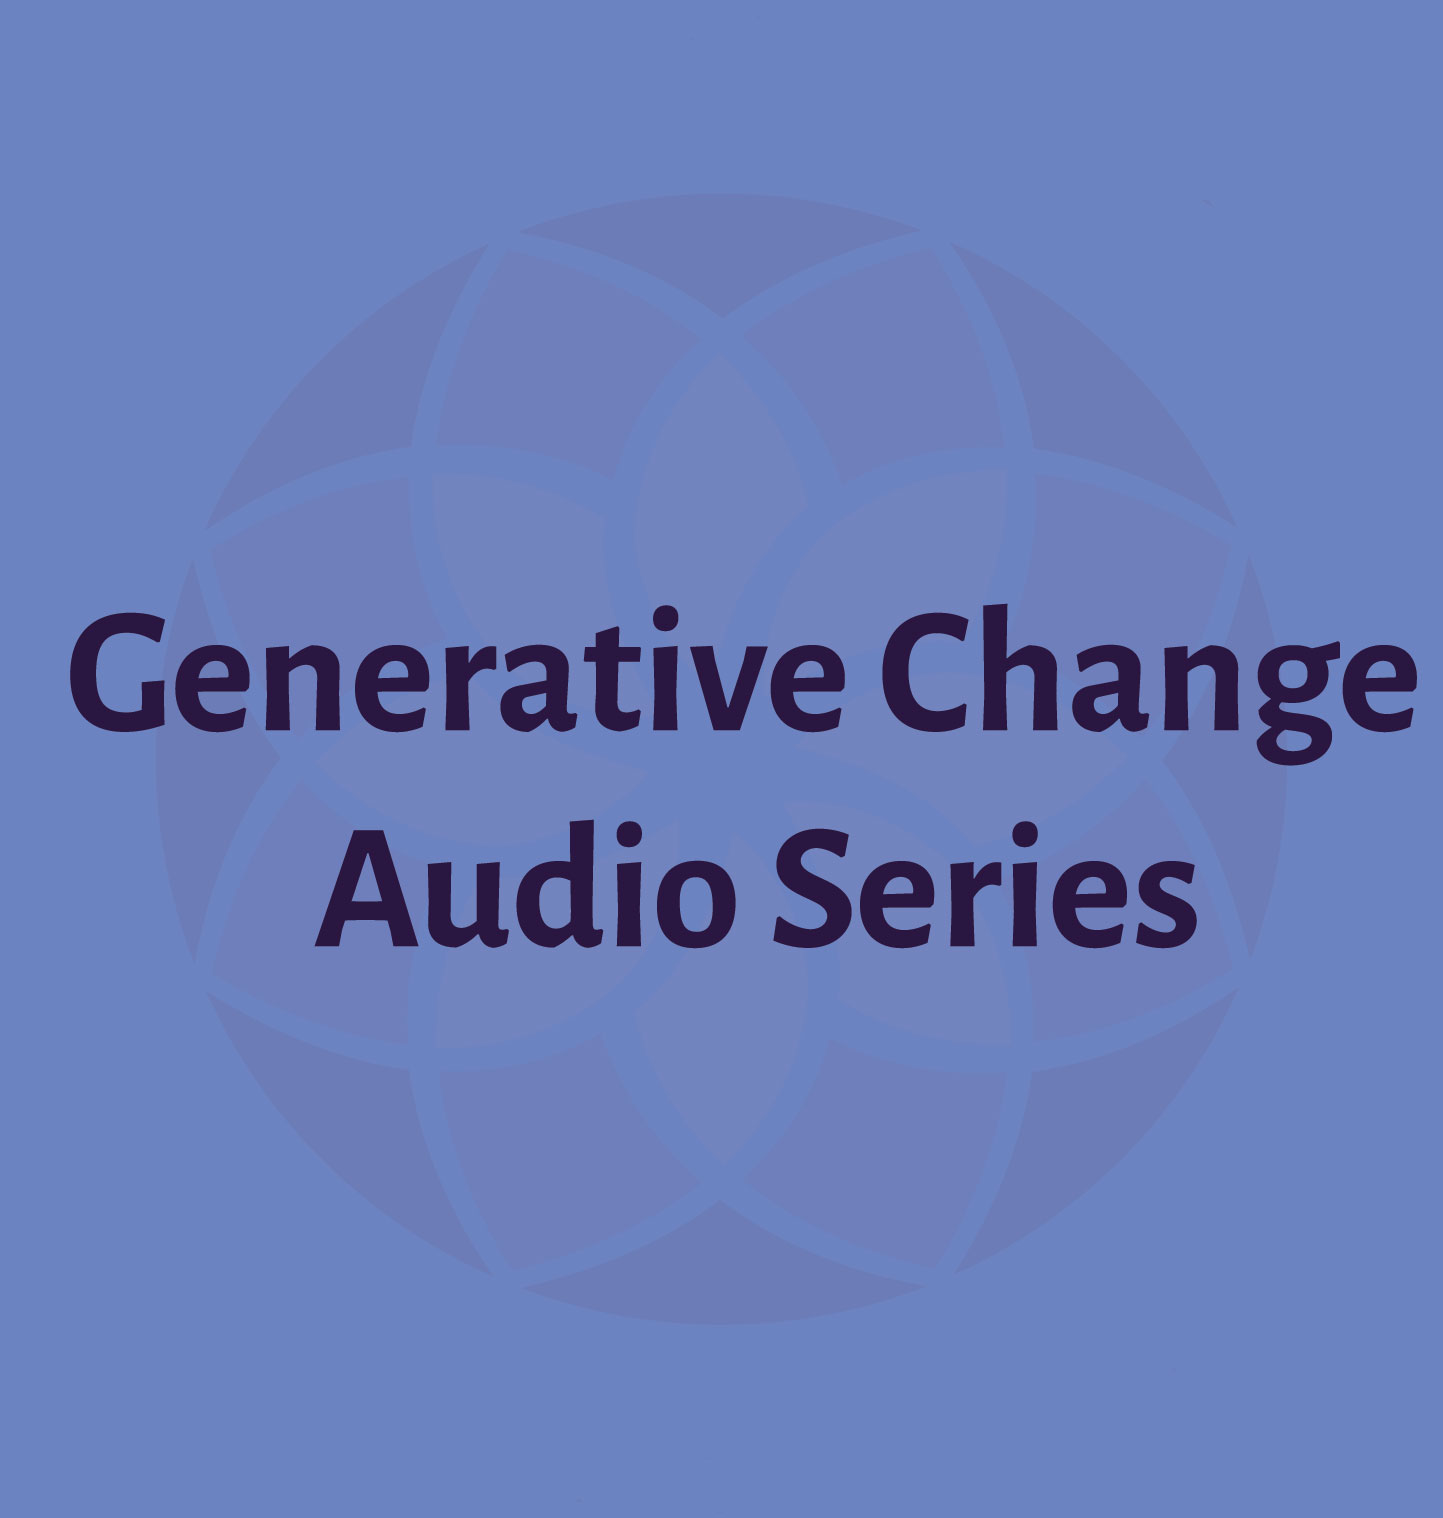 Generative Change Audio Series